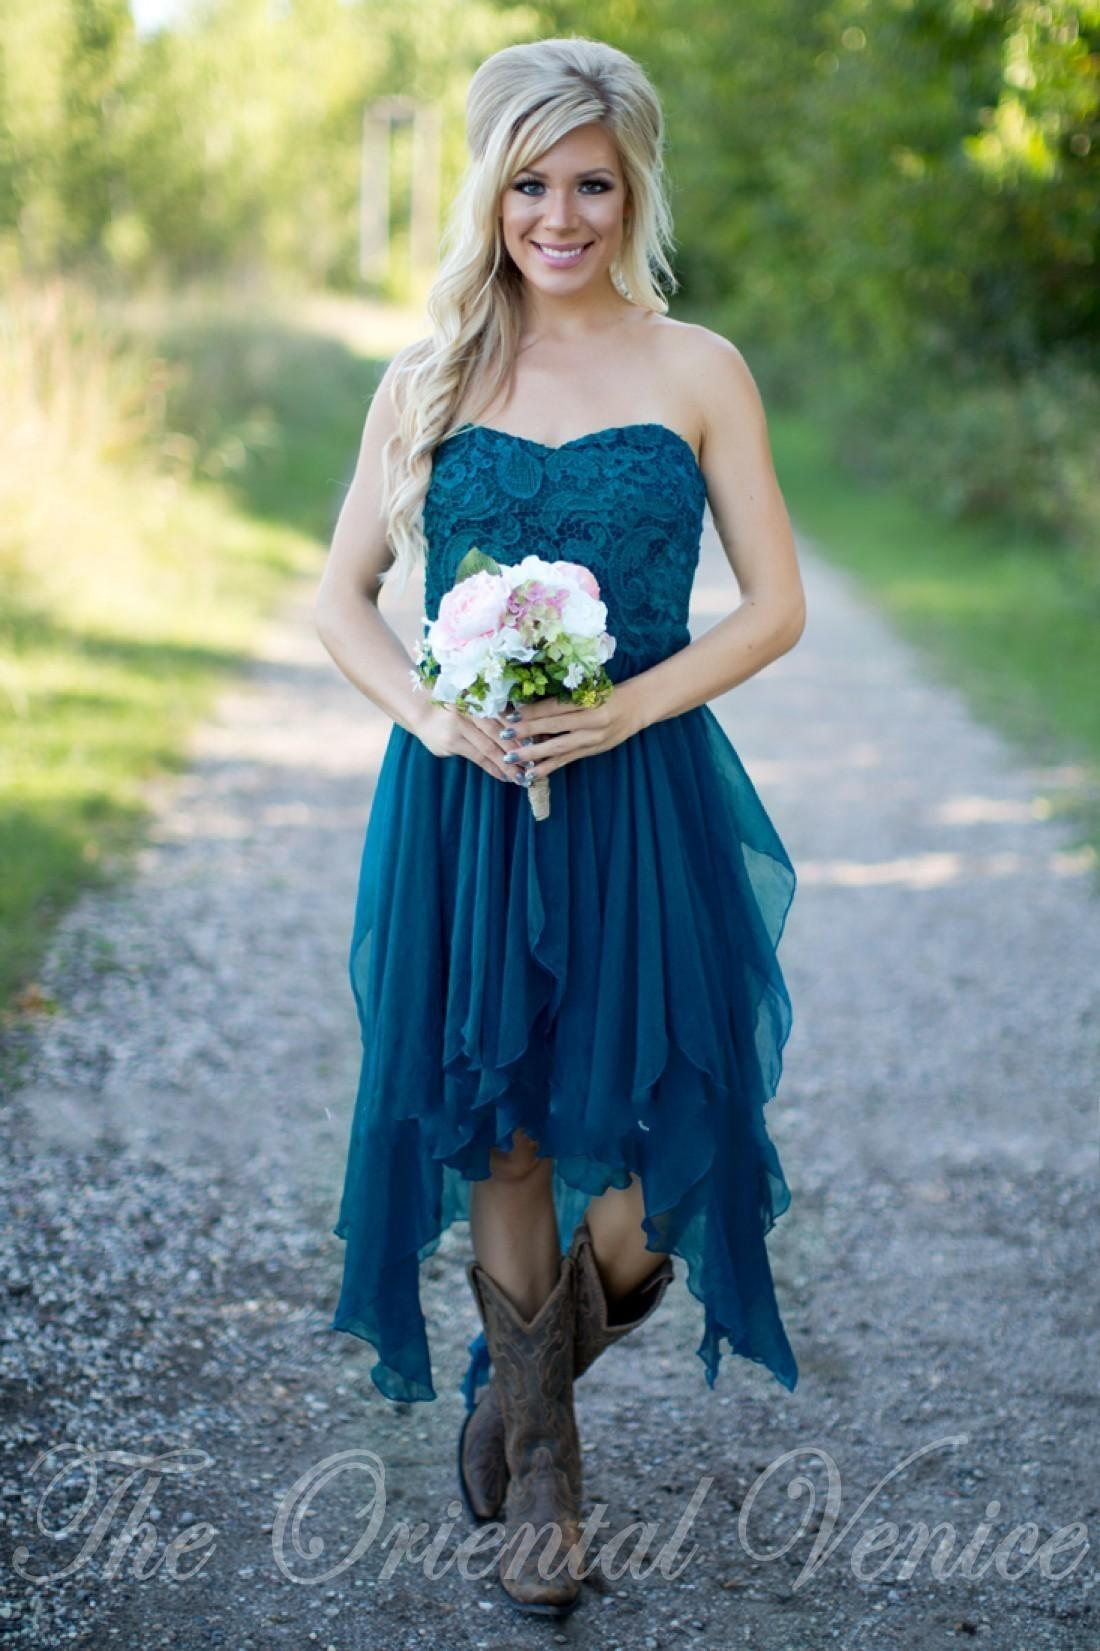 Country short bridesmaid dresses 2017 cheap teal chiffon summer country short bridesmaid dresses 2017 cheap teal chiffon summer beach bridesmaid dresses lace appliques high low wedding party gowns country short ombrellifo Gallery